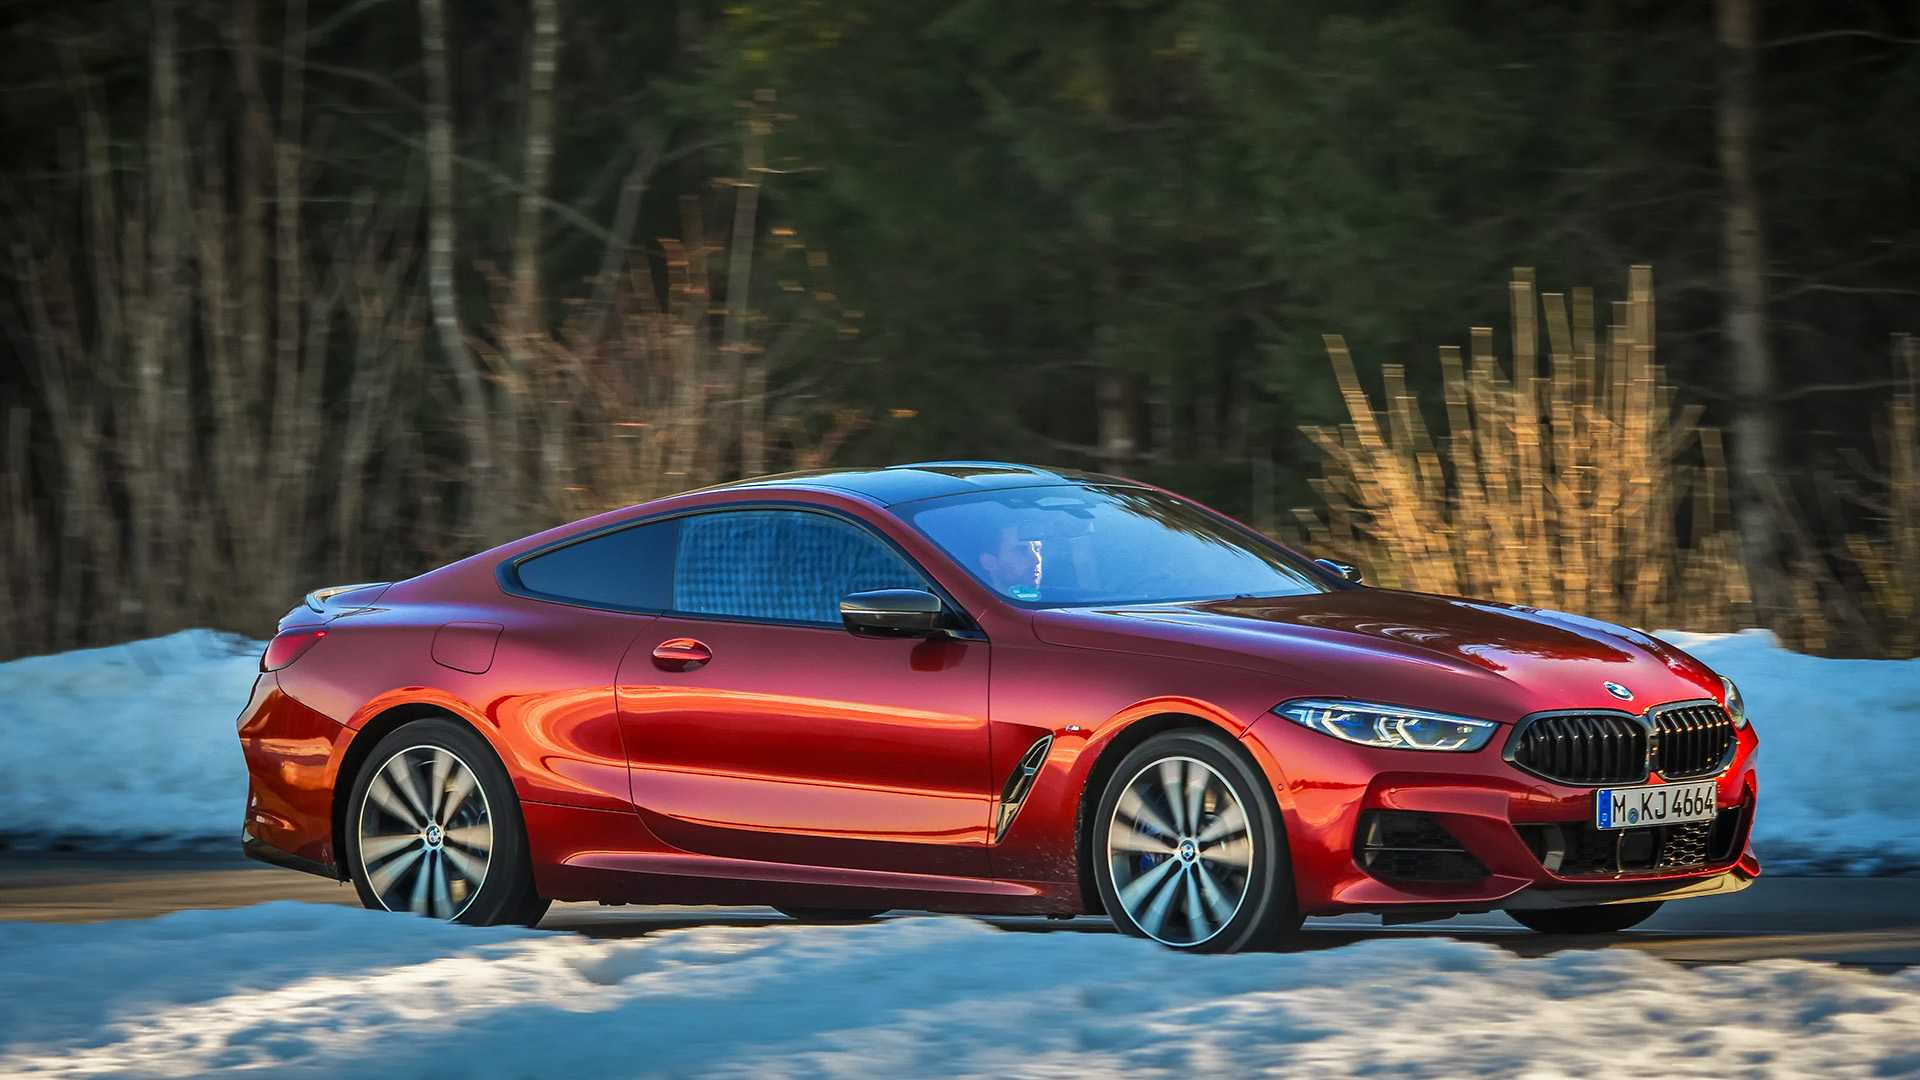 2019 Bmw M850i Xdrive Review Big Speed Little Character